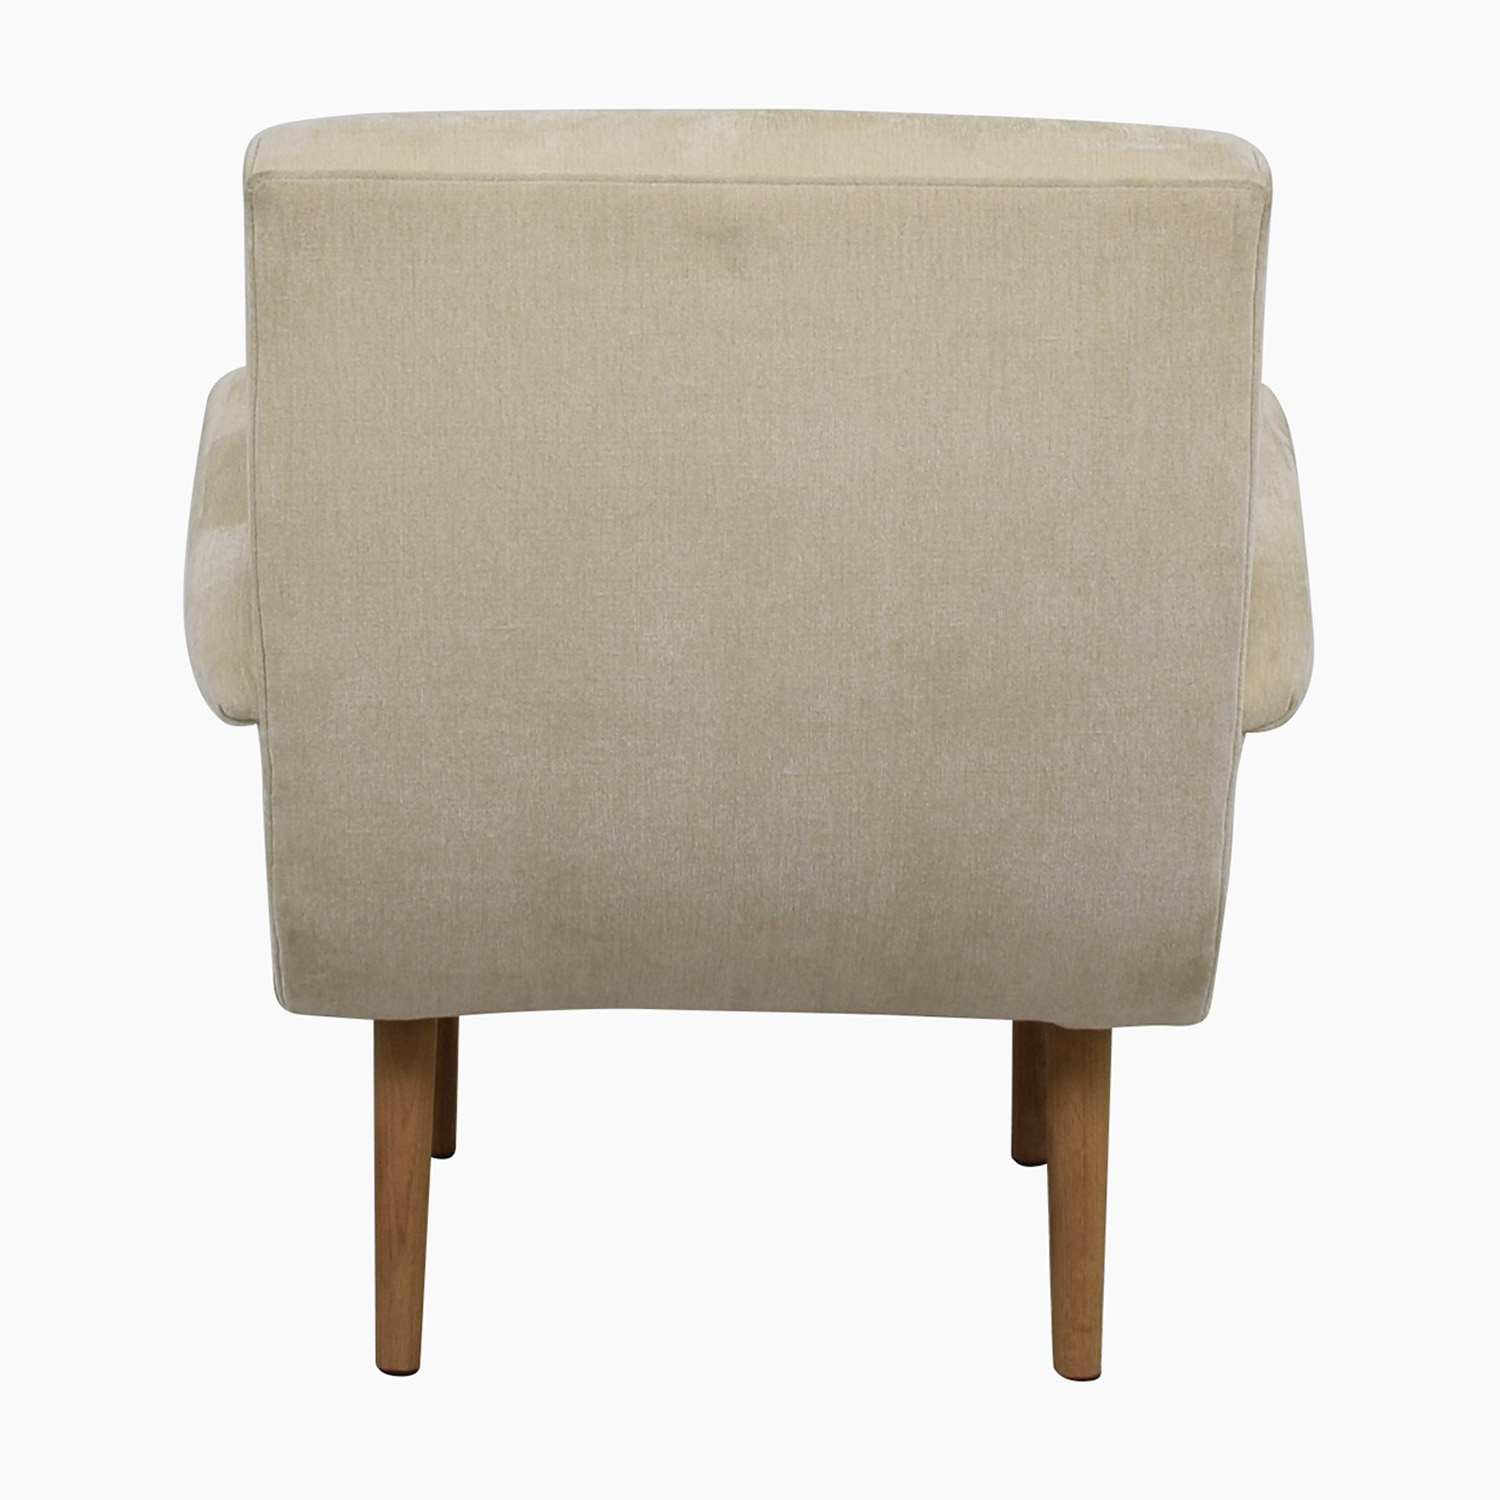 shop Furniture Masters Furniture Masters Beige Upholstered Wing Accent Chair online